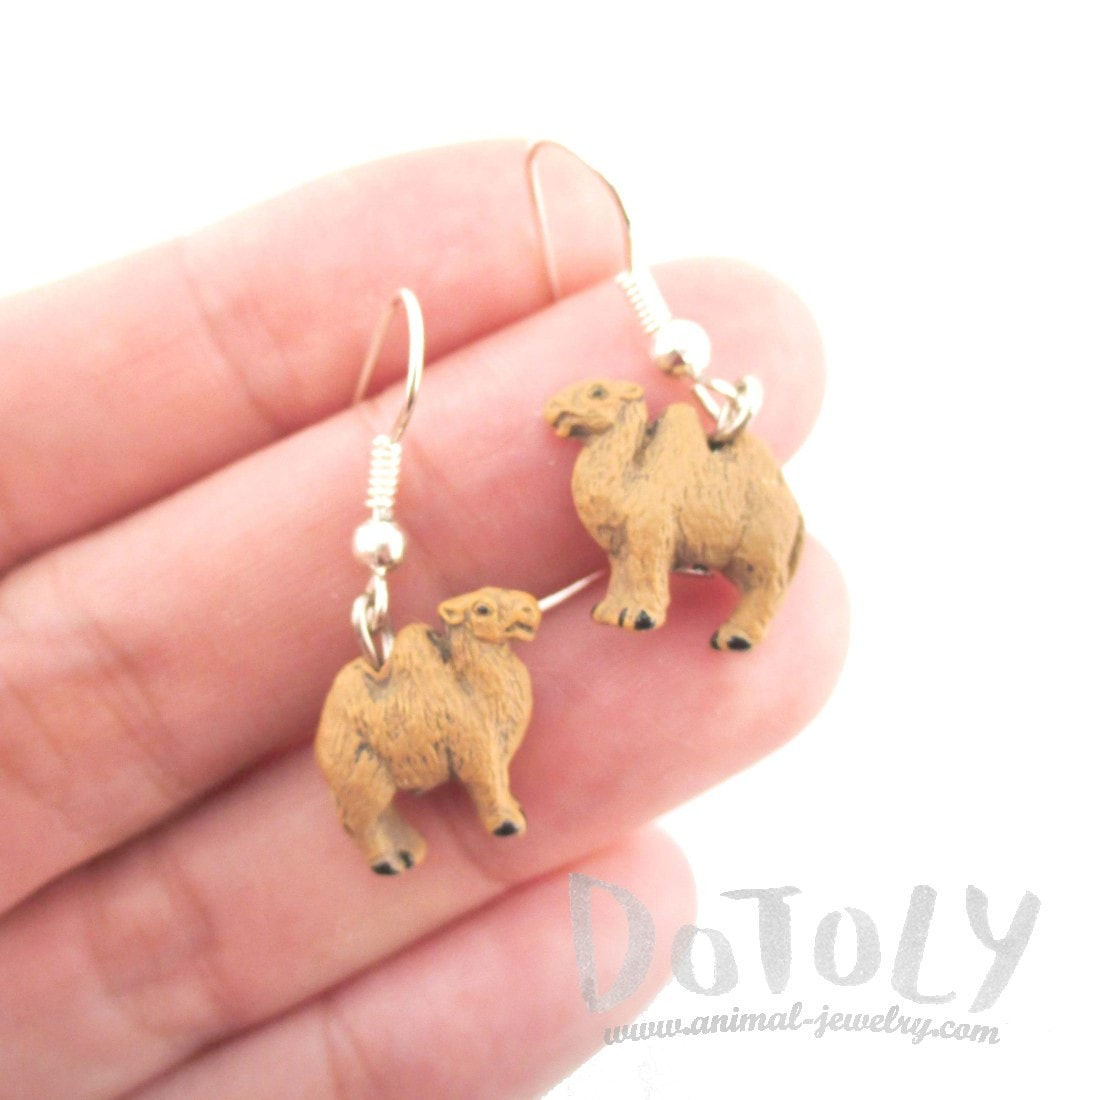 Porcelain Bactrian Camel Shaped Ceramic Dangle Earrings | Handmade